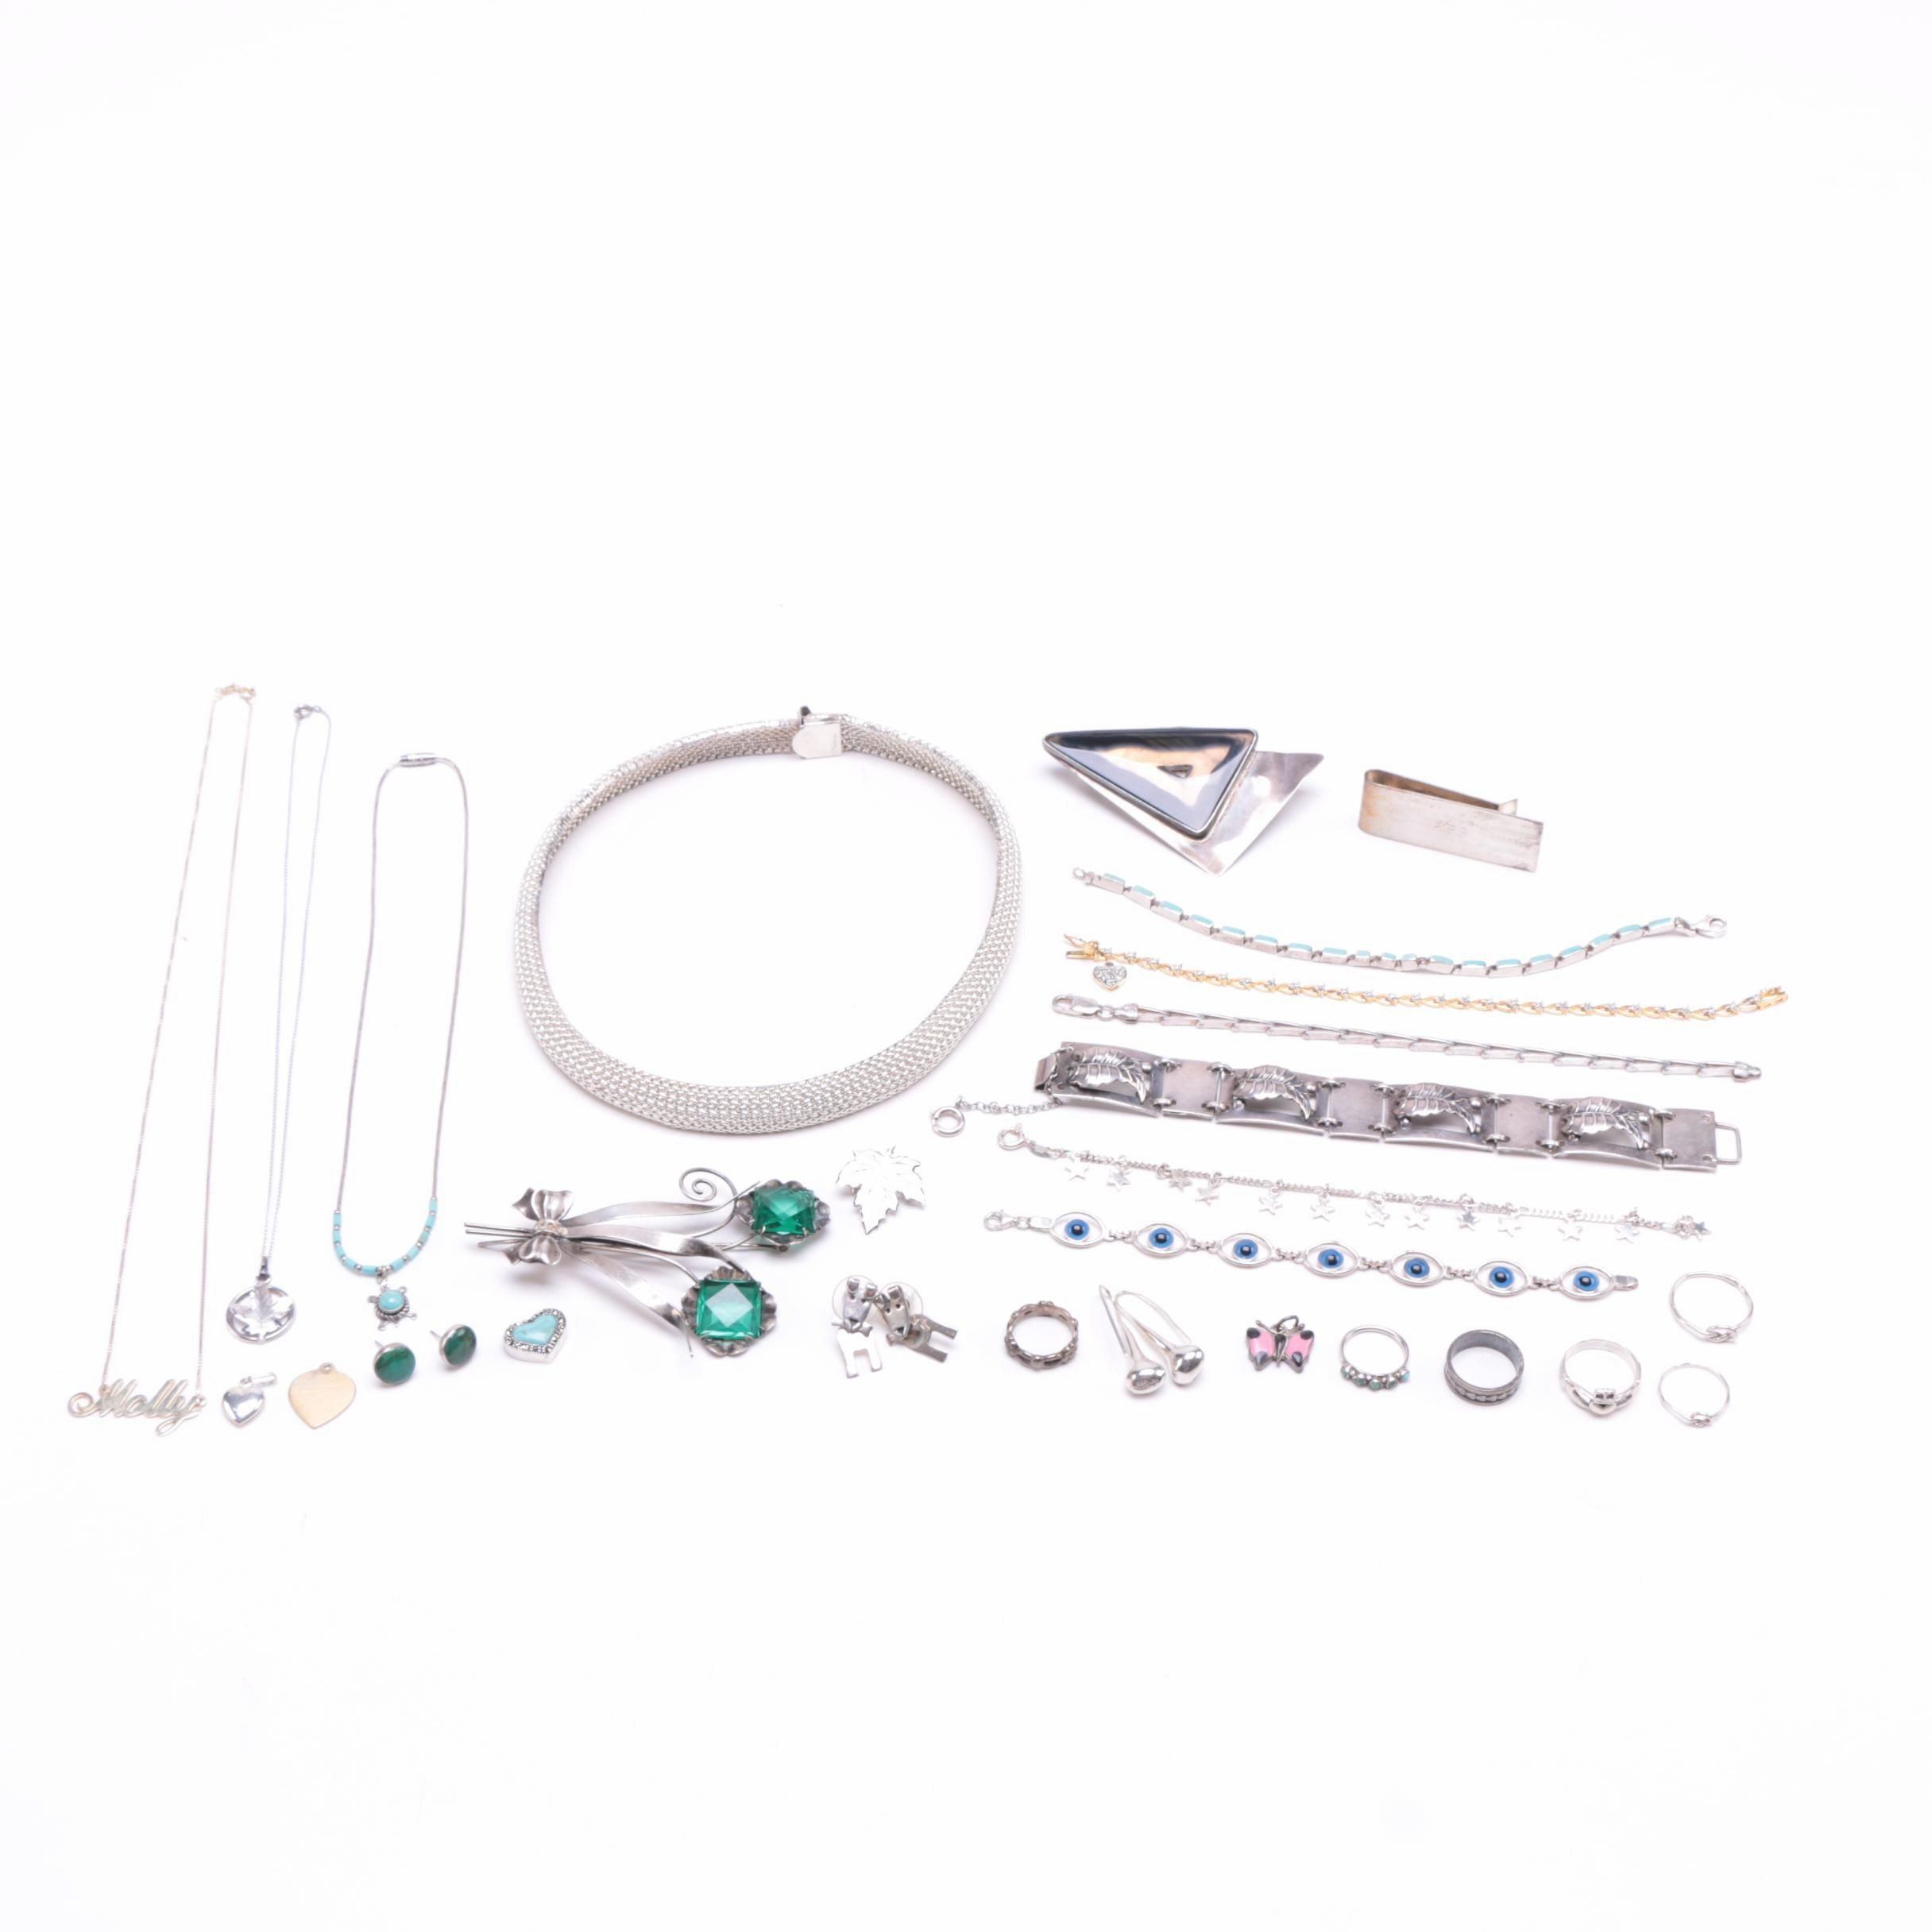 Assorted Sterling Silver Jewelry Including Sucherman